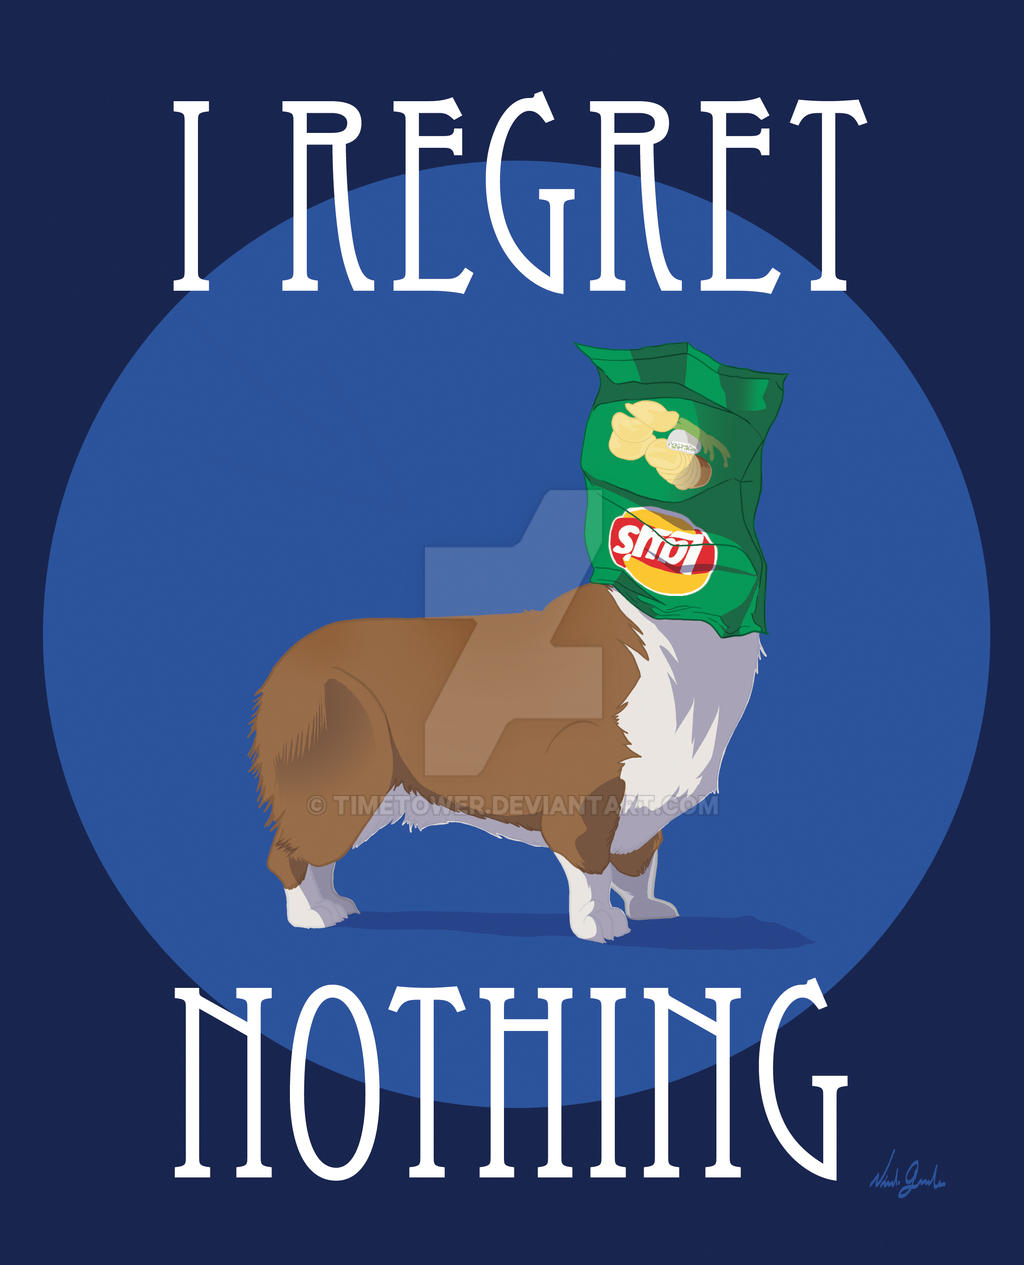 I Regret Nothing by Timetower